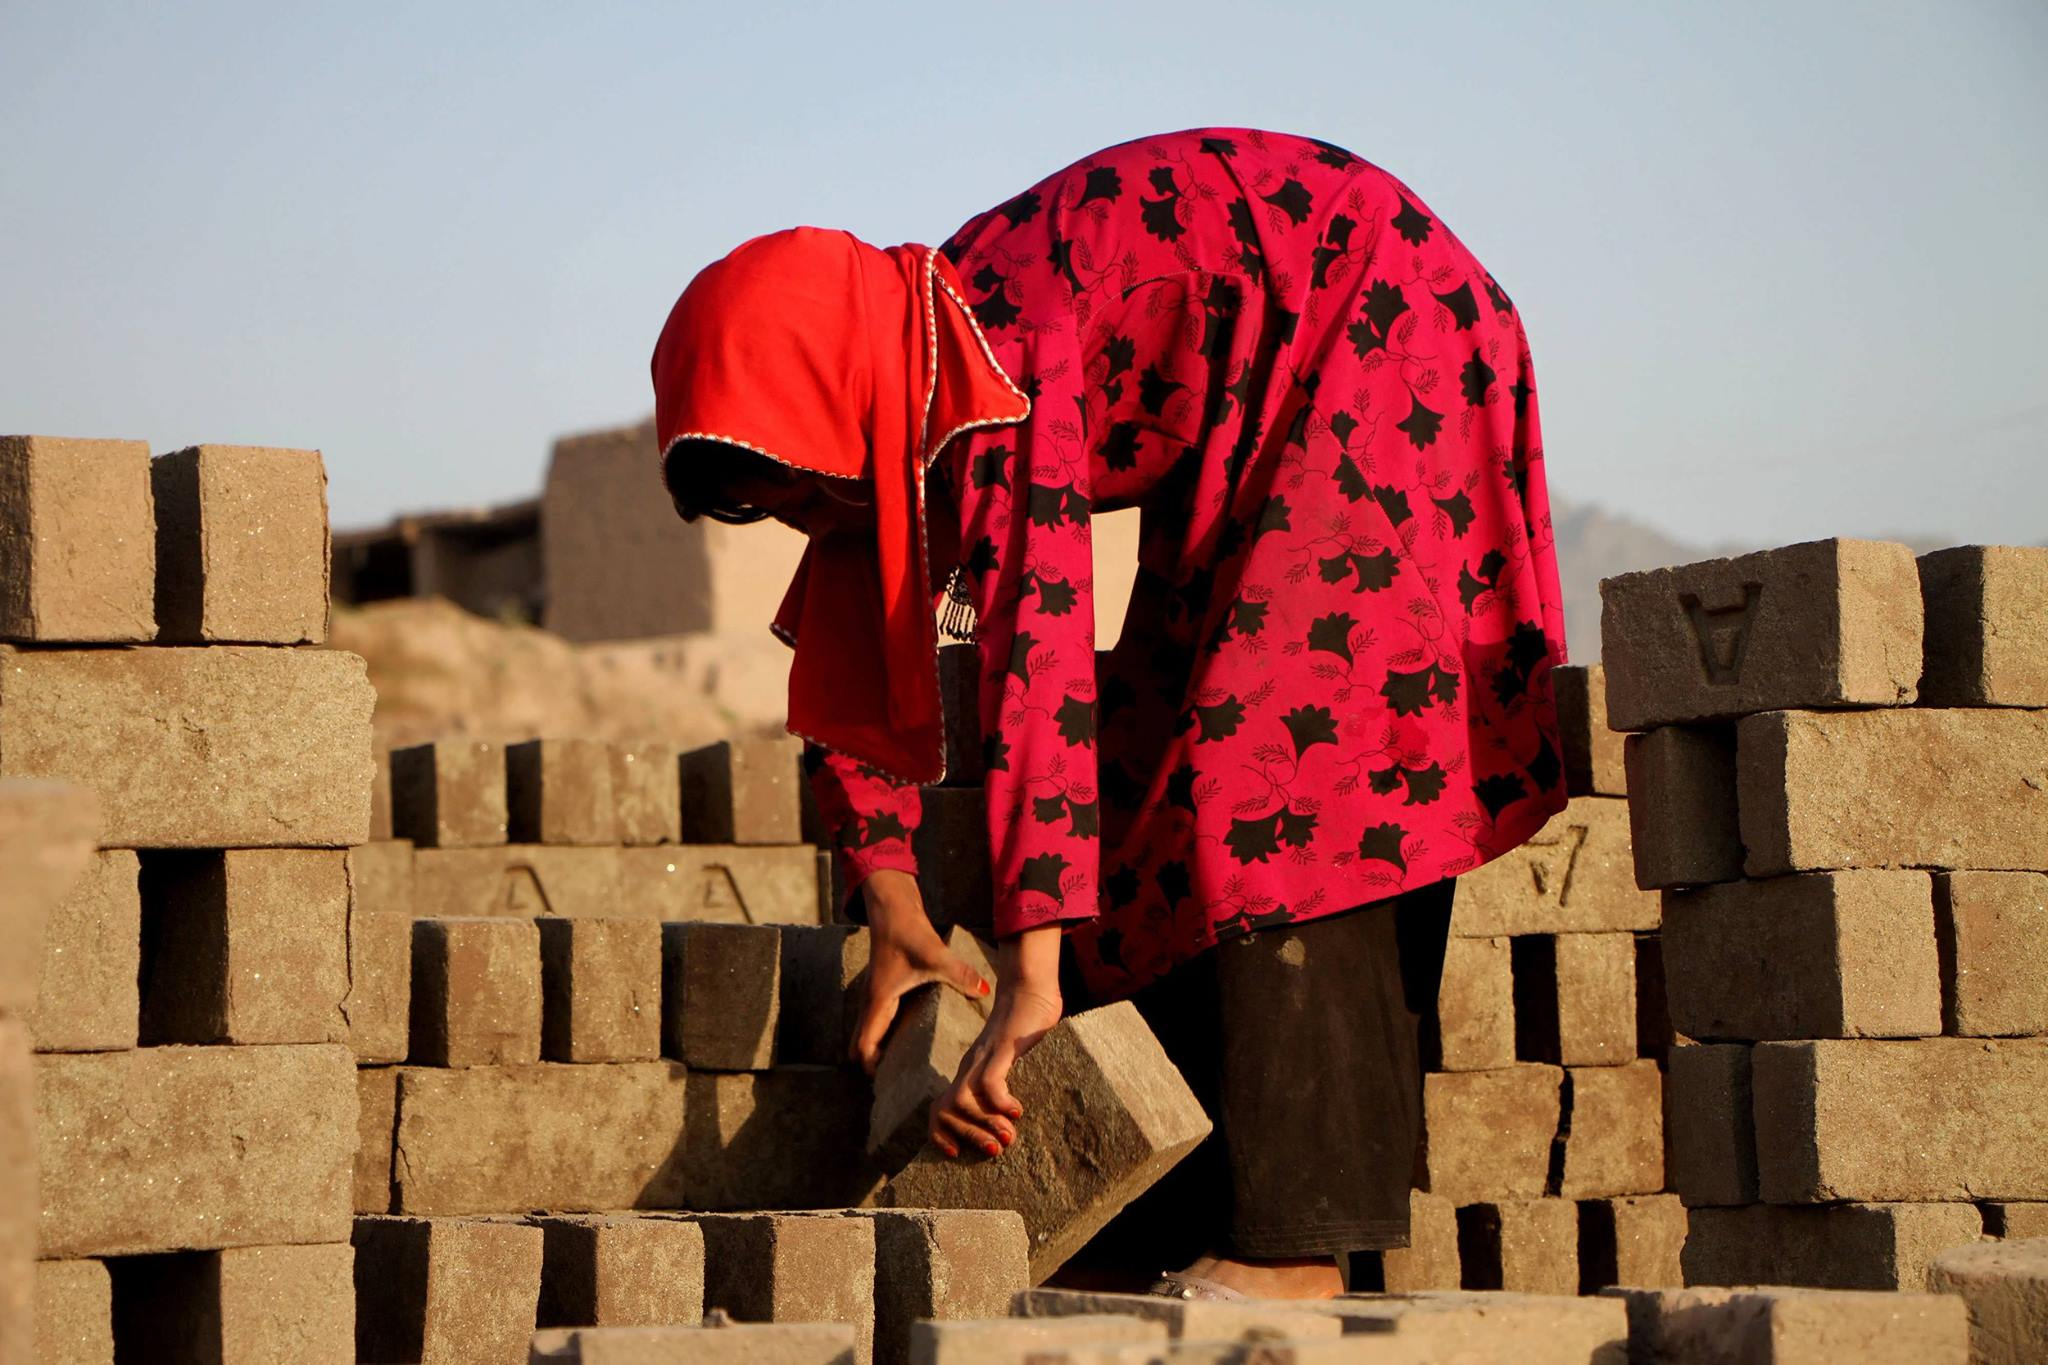 A young woman bends over picking up a mud brick.